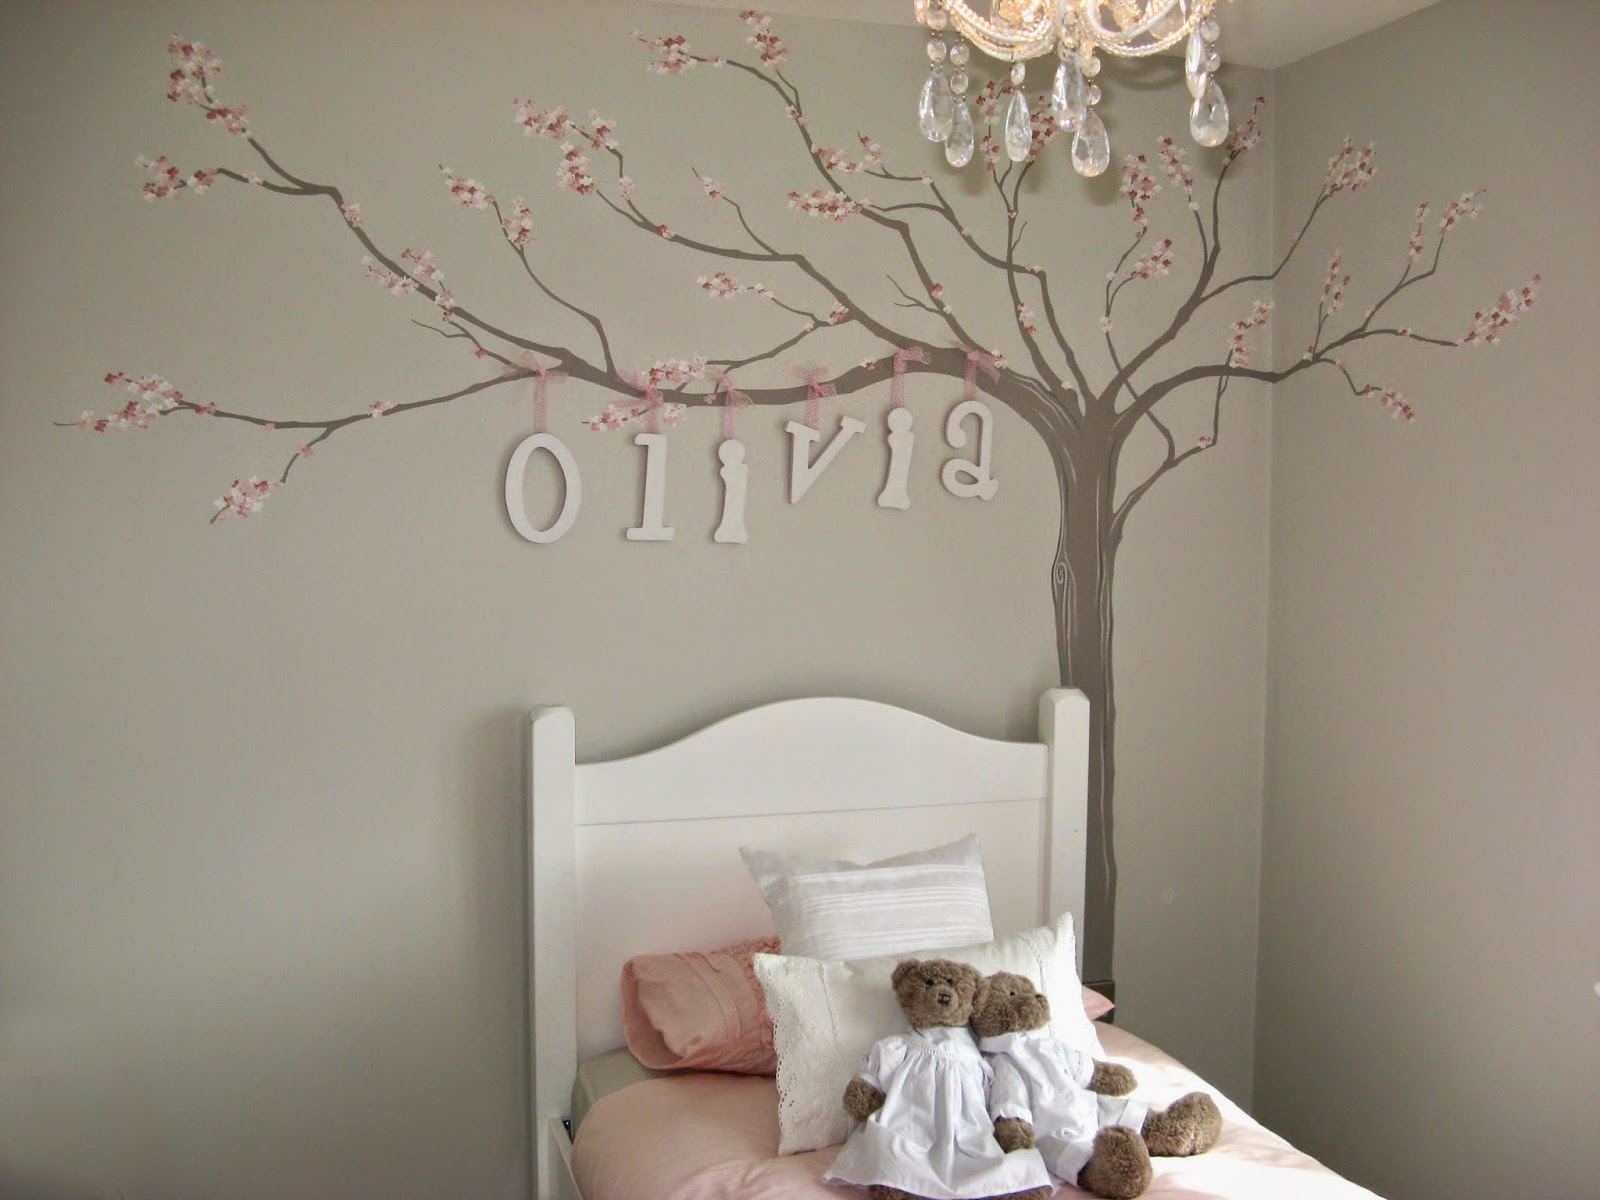 I Hand Painted A Blossom Using Soft Tones Painting The Tree In Corner To Stretch Over Bed And Then Wooden Letters With